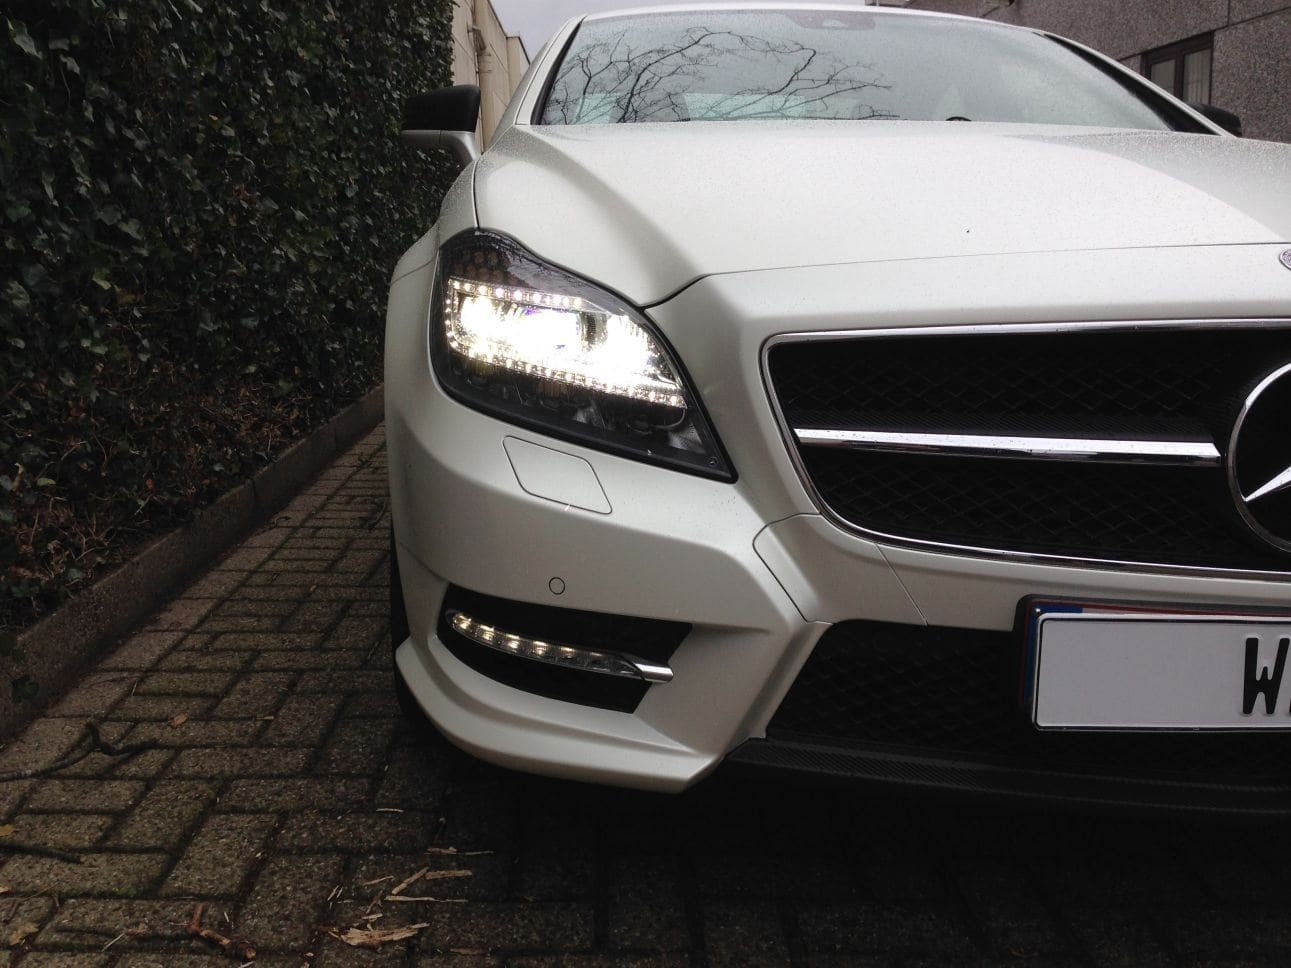 Mercedes CLS met White Satin Pearl Wrap, Carwrapping door Wrapmyride.nu Foto-nr:6204, ©2021